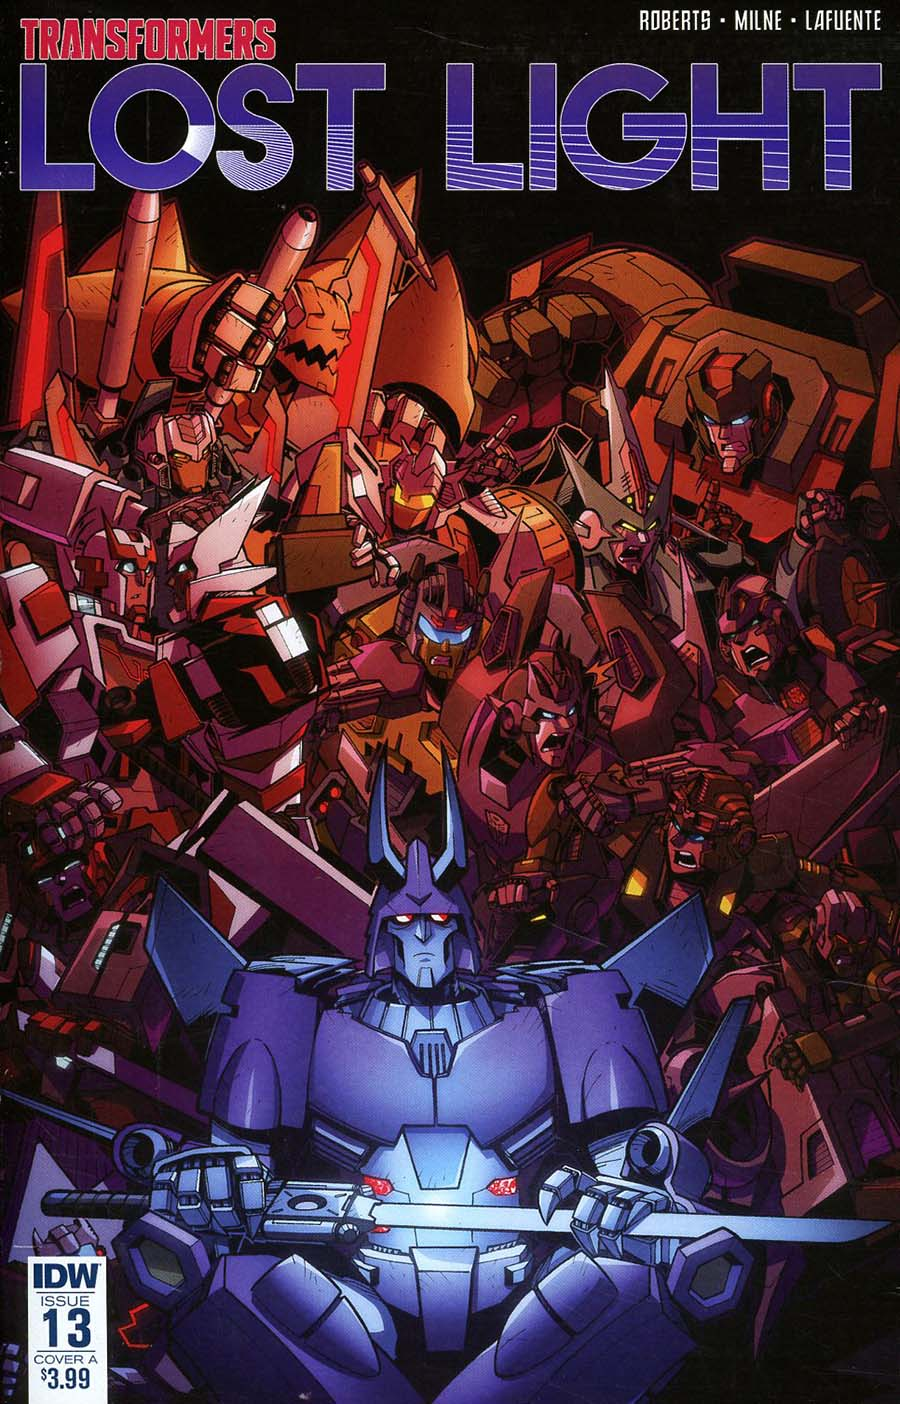 Transformers Lost Light #13 Cover A Regular Jack Lawrence Cover